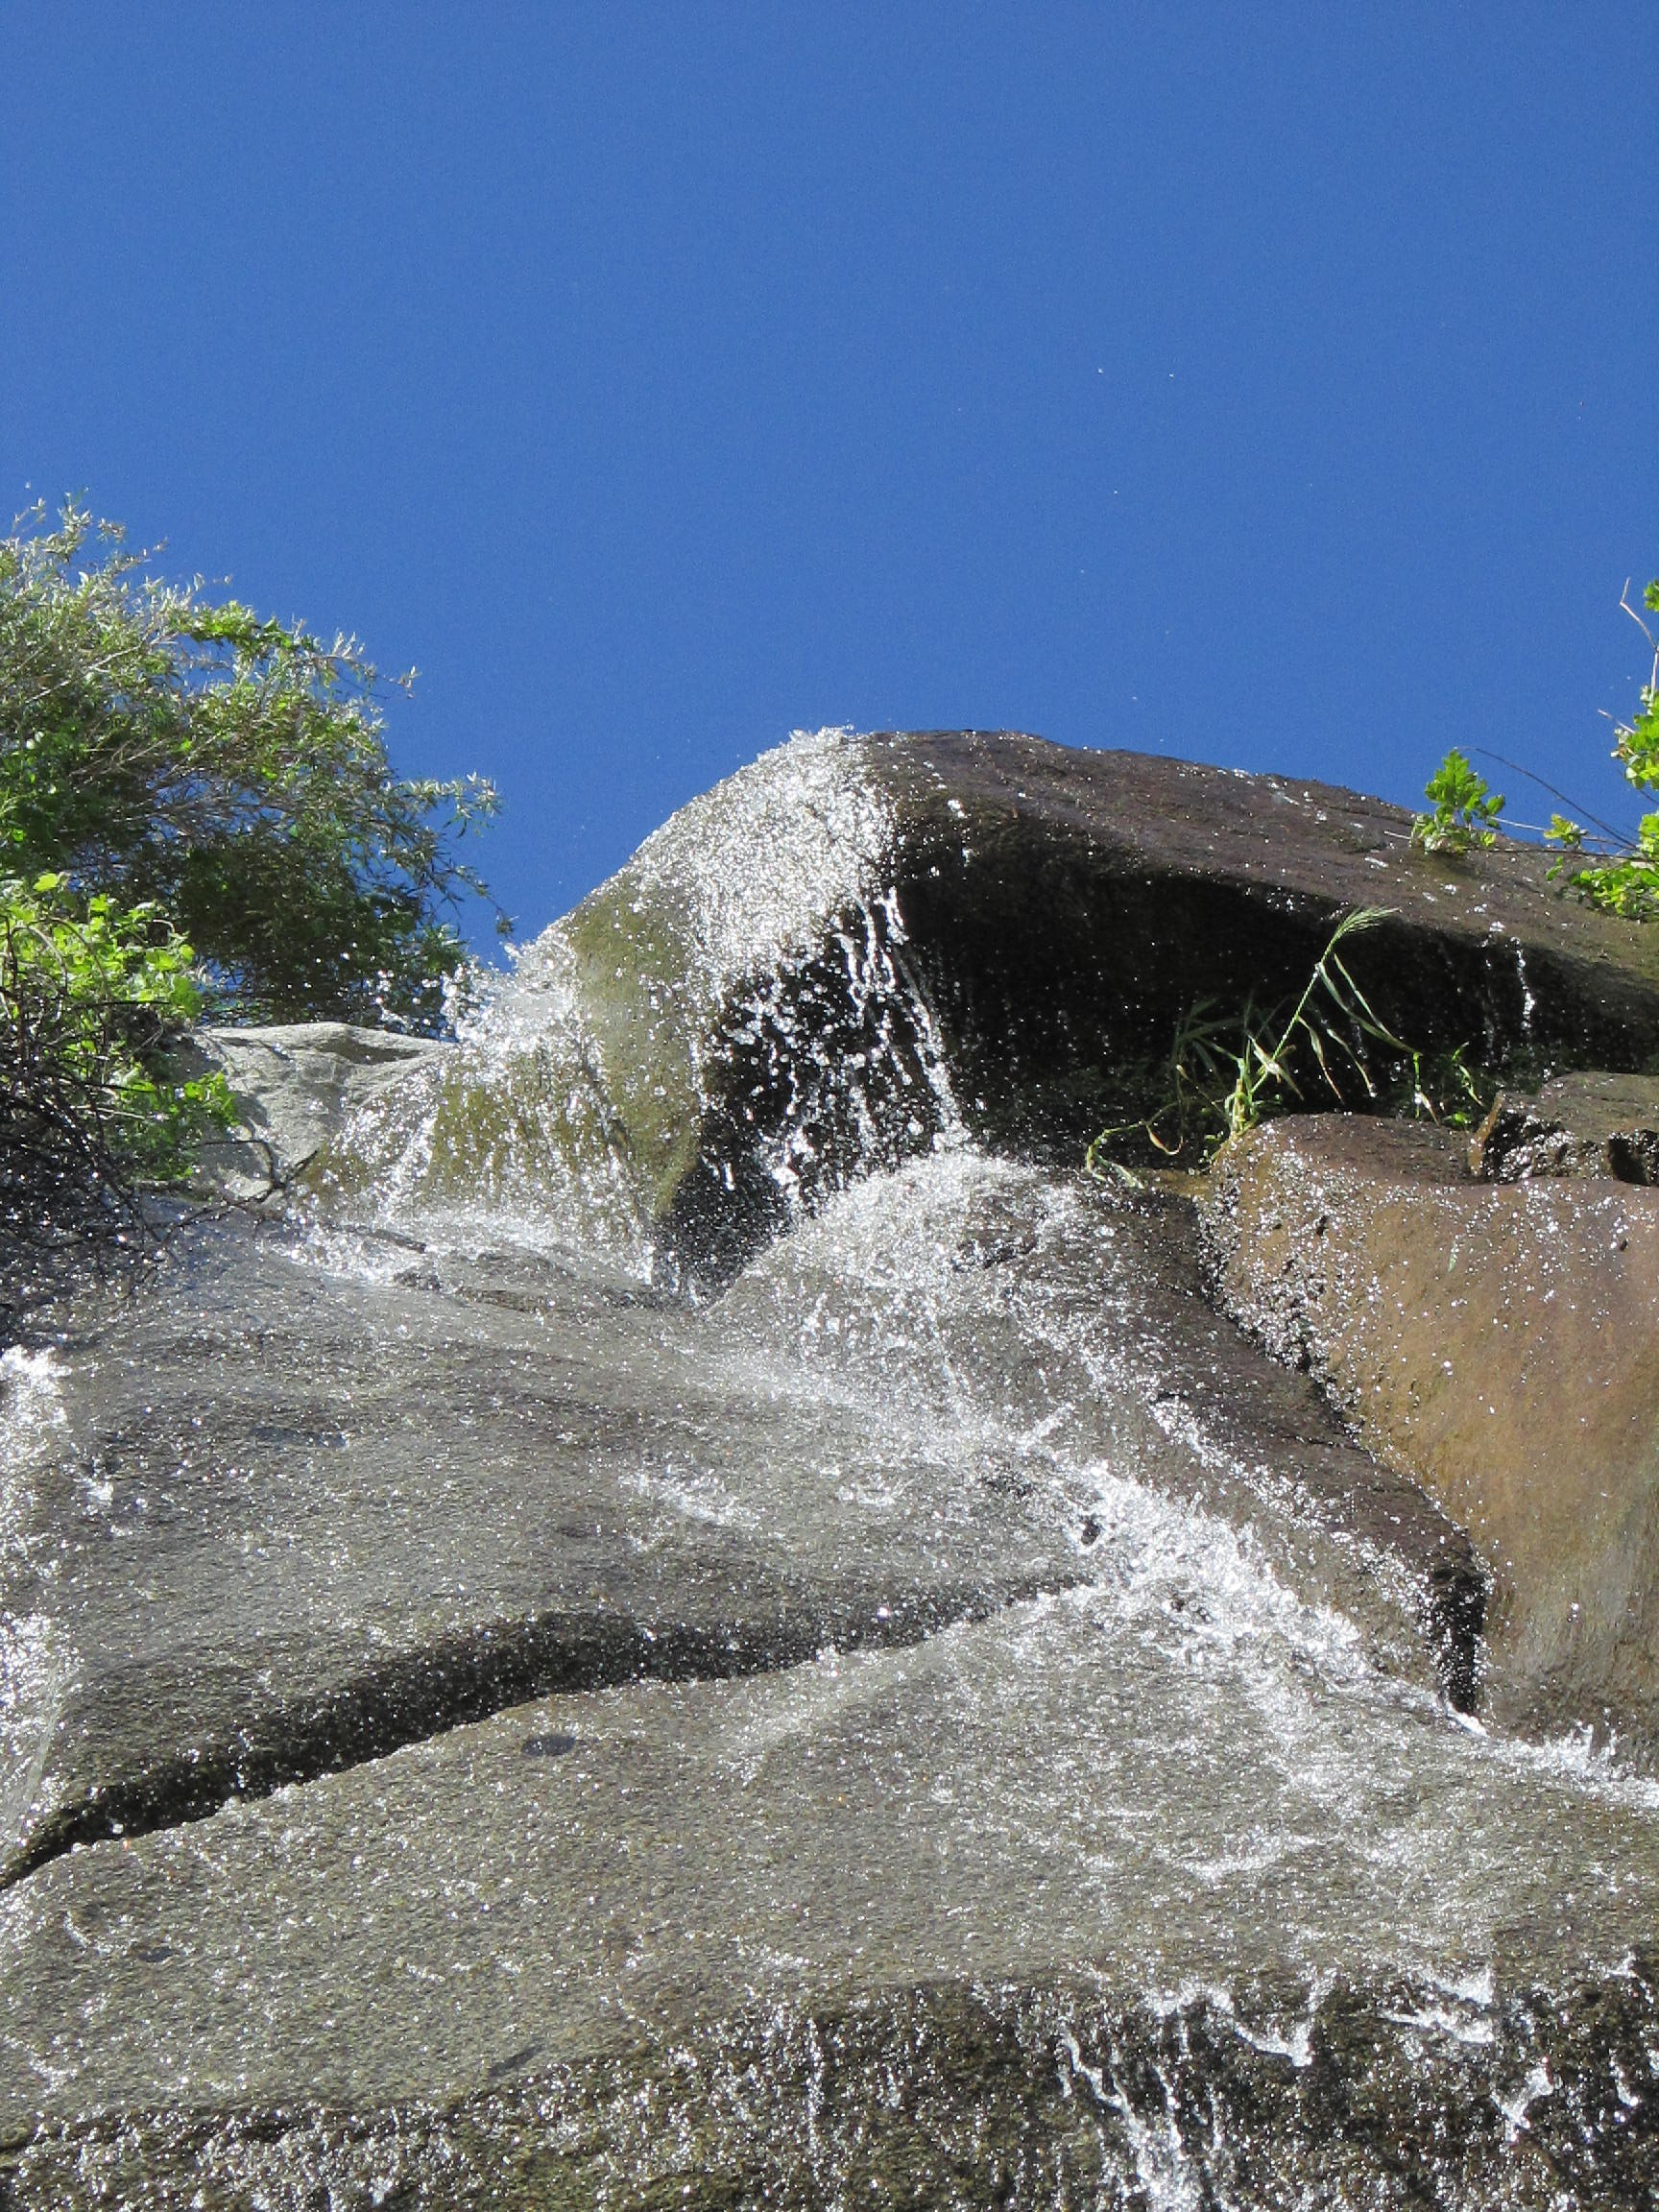 Water flowing off the top of the waterfall